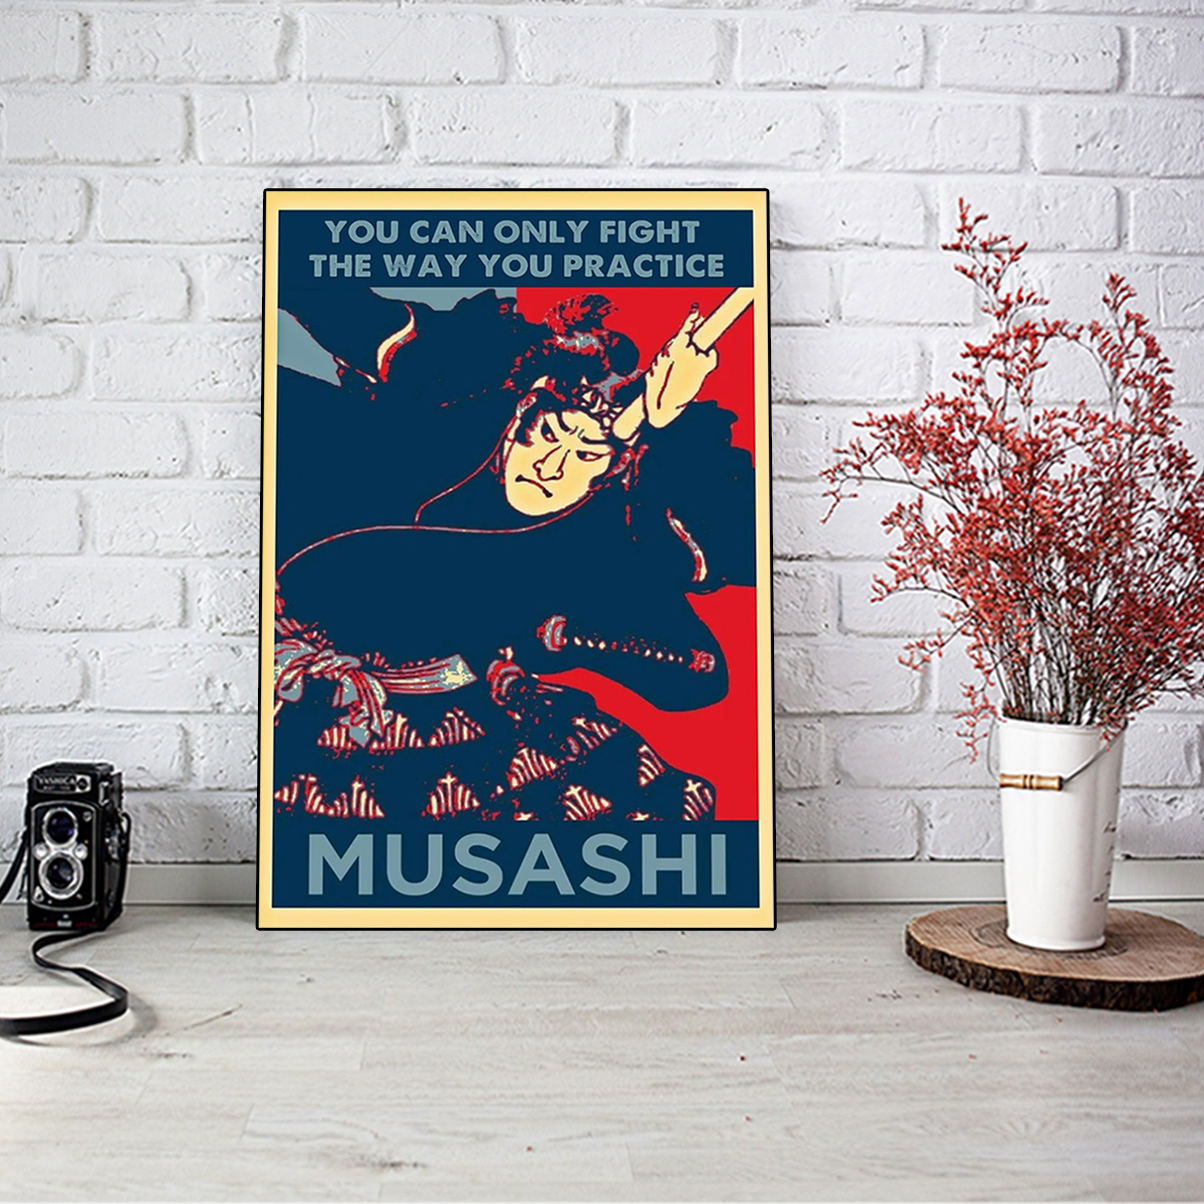 Samurai you can only fight the way you practice musashi poster A3